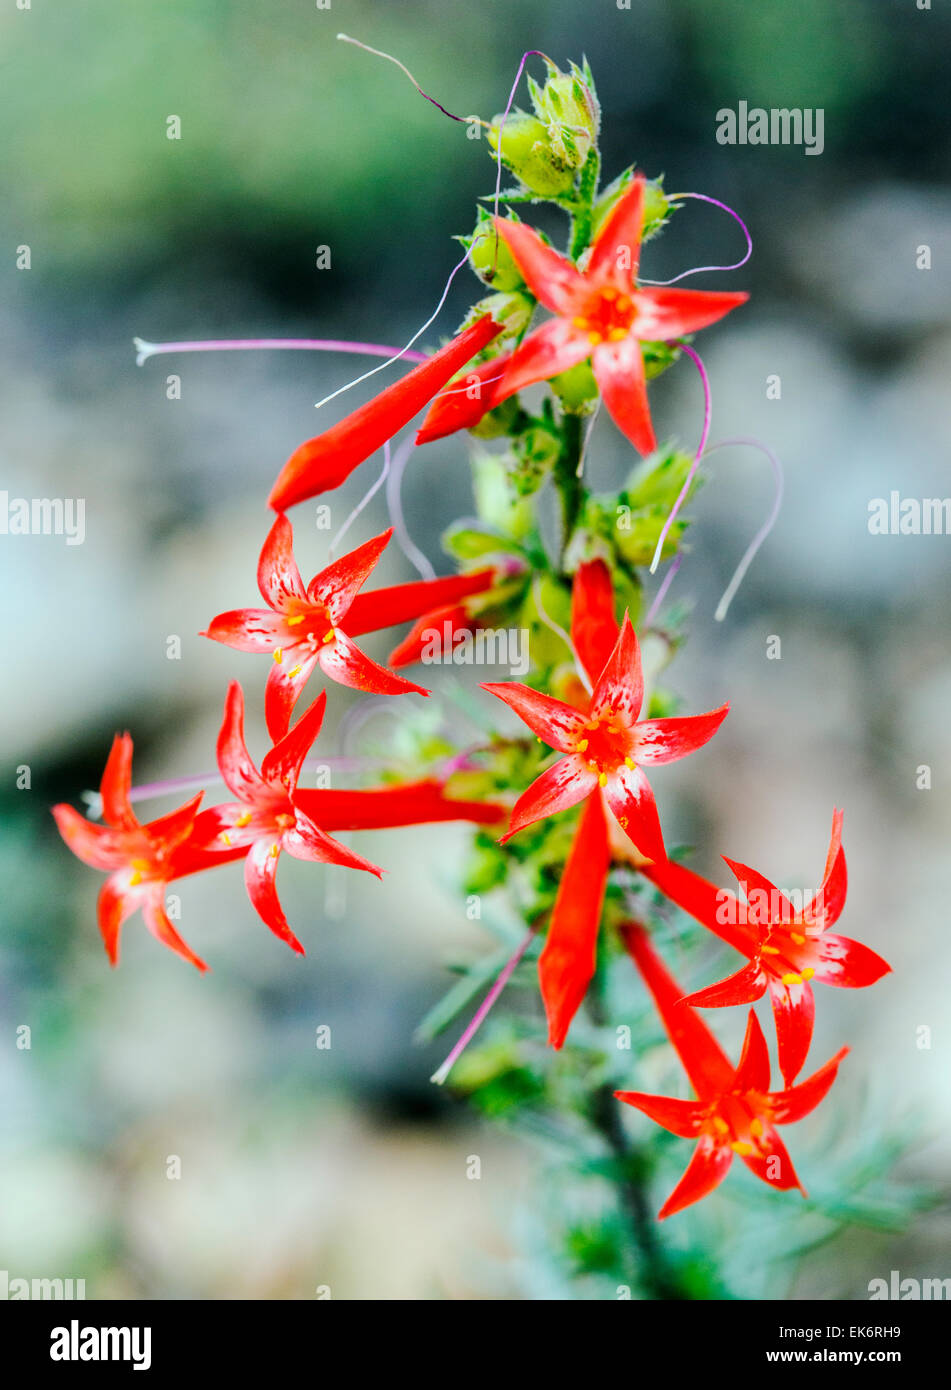 Scarlet Gilia, Ipomopsis aggregata, Morning Glories, wildflowers in bloom, Central Colorado, USA - Stock Image